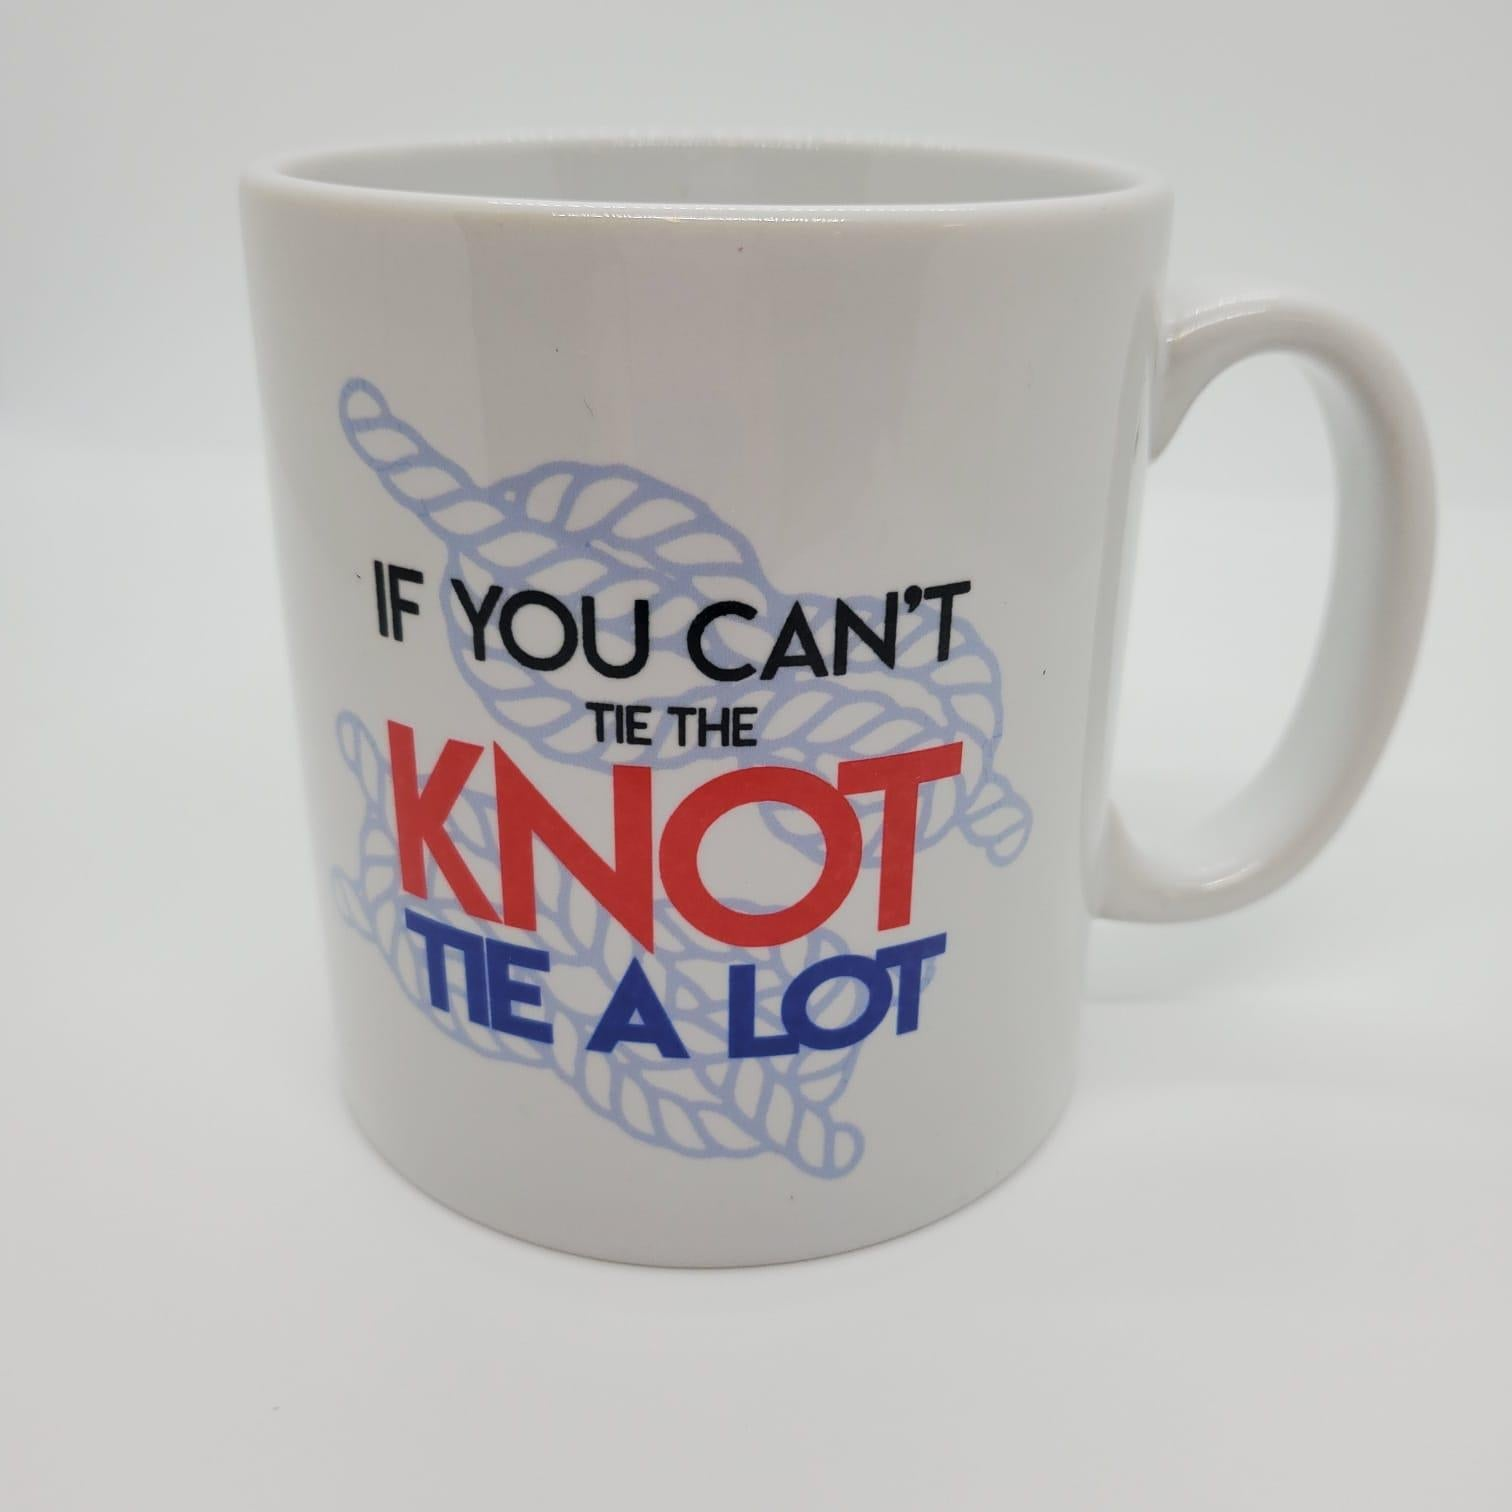 Sailing Mug - If You Can't Tie The Knot Tie A Lot